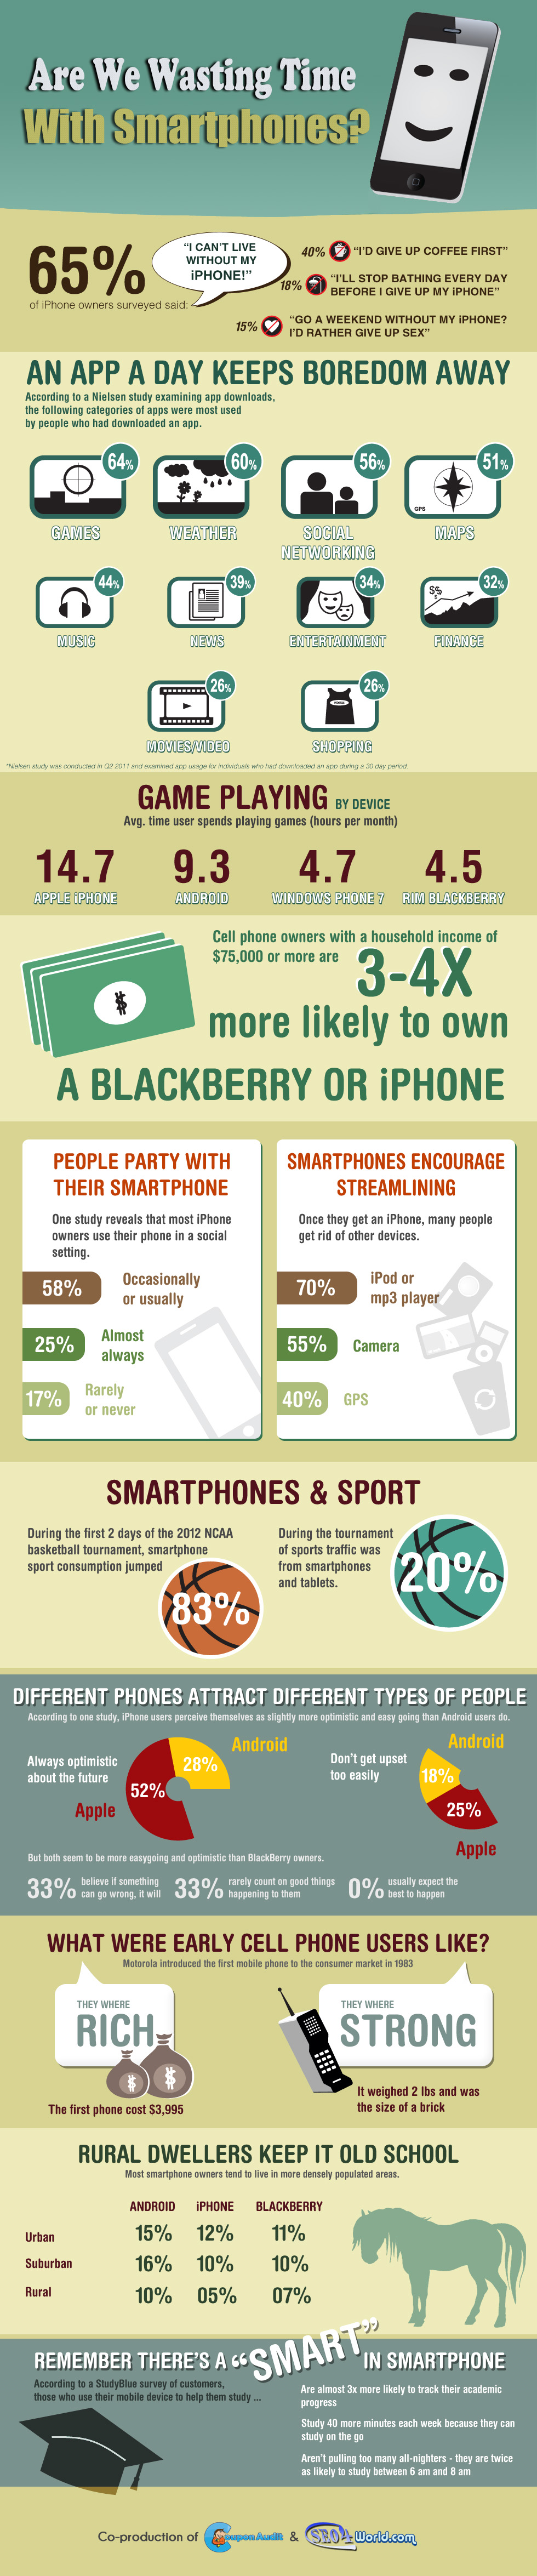 Are We Wasting Time With Smartphones? [InfoGraphic]